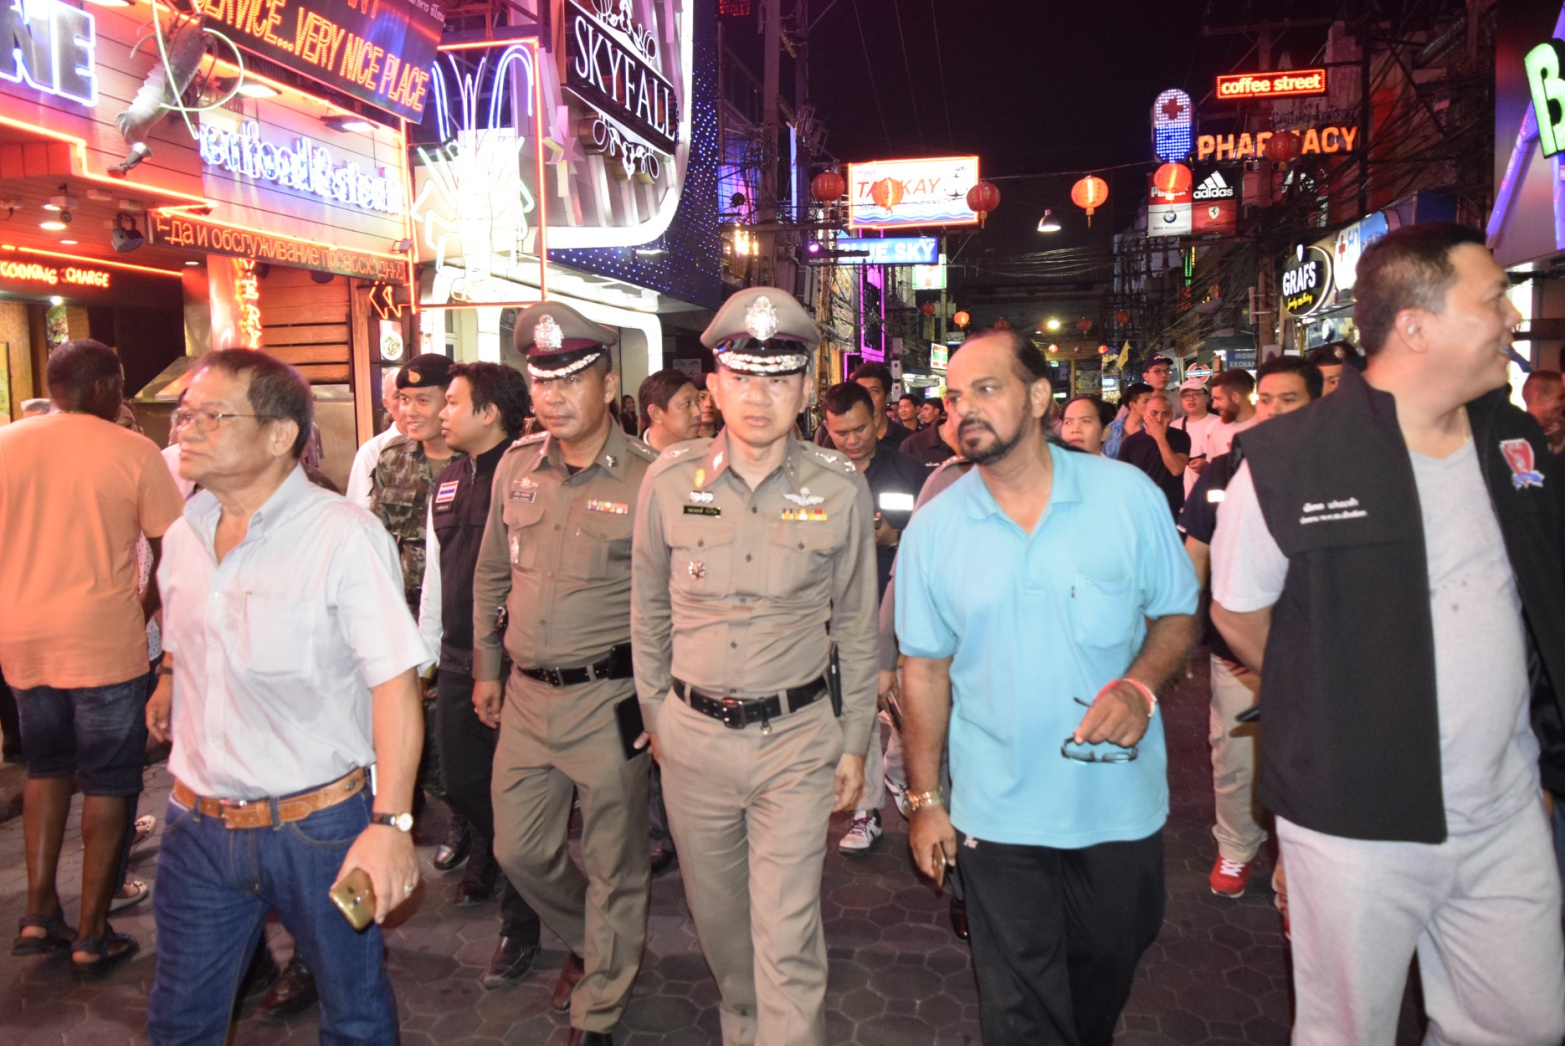 Following the meeting, the entourage walked the nightlife strip and chatted with tourists.